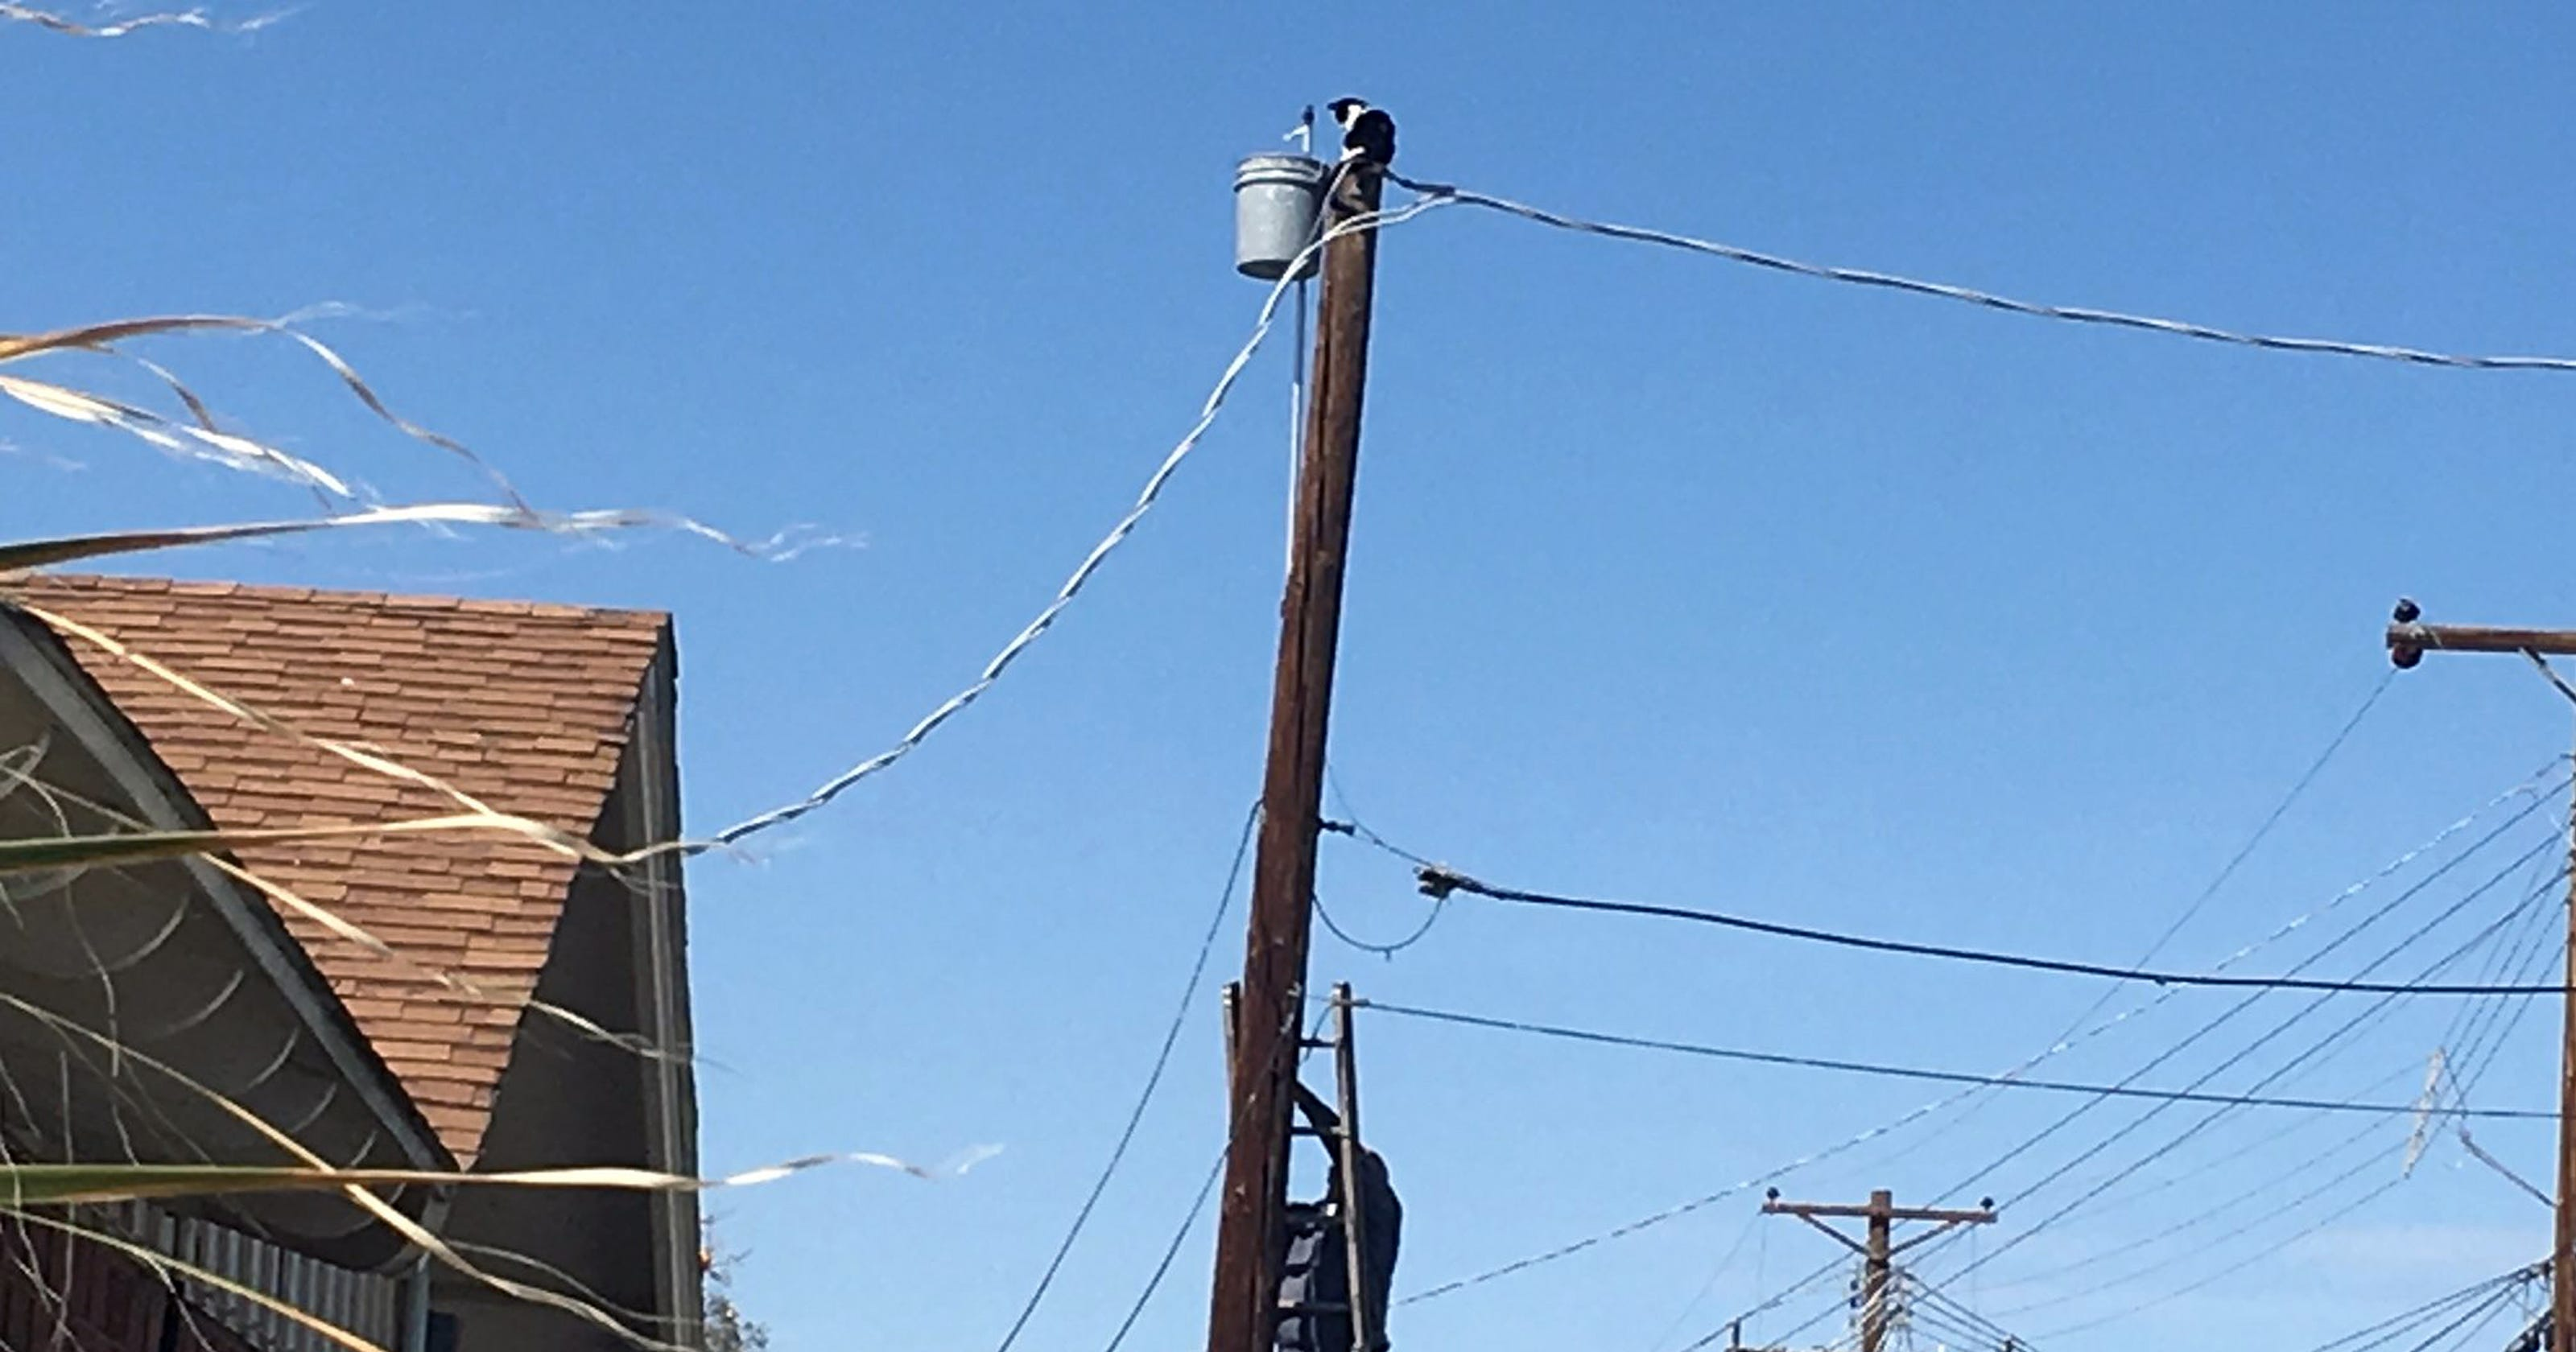 Emergency calls for cat stuck on utility pole clog Phoenix\'s 911 lines